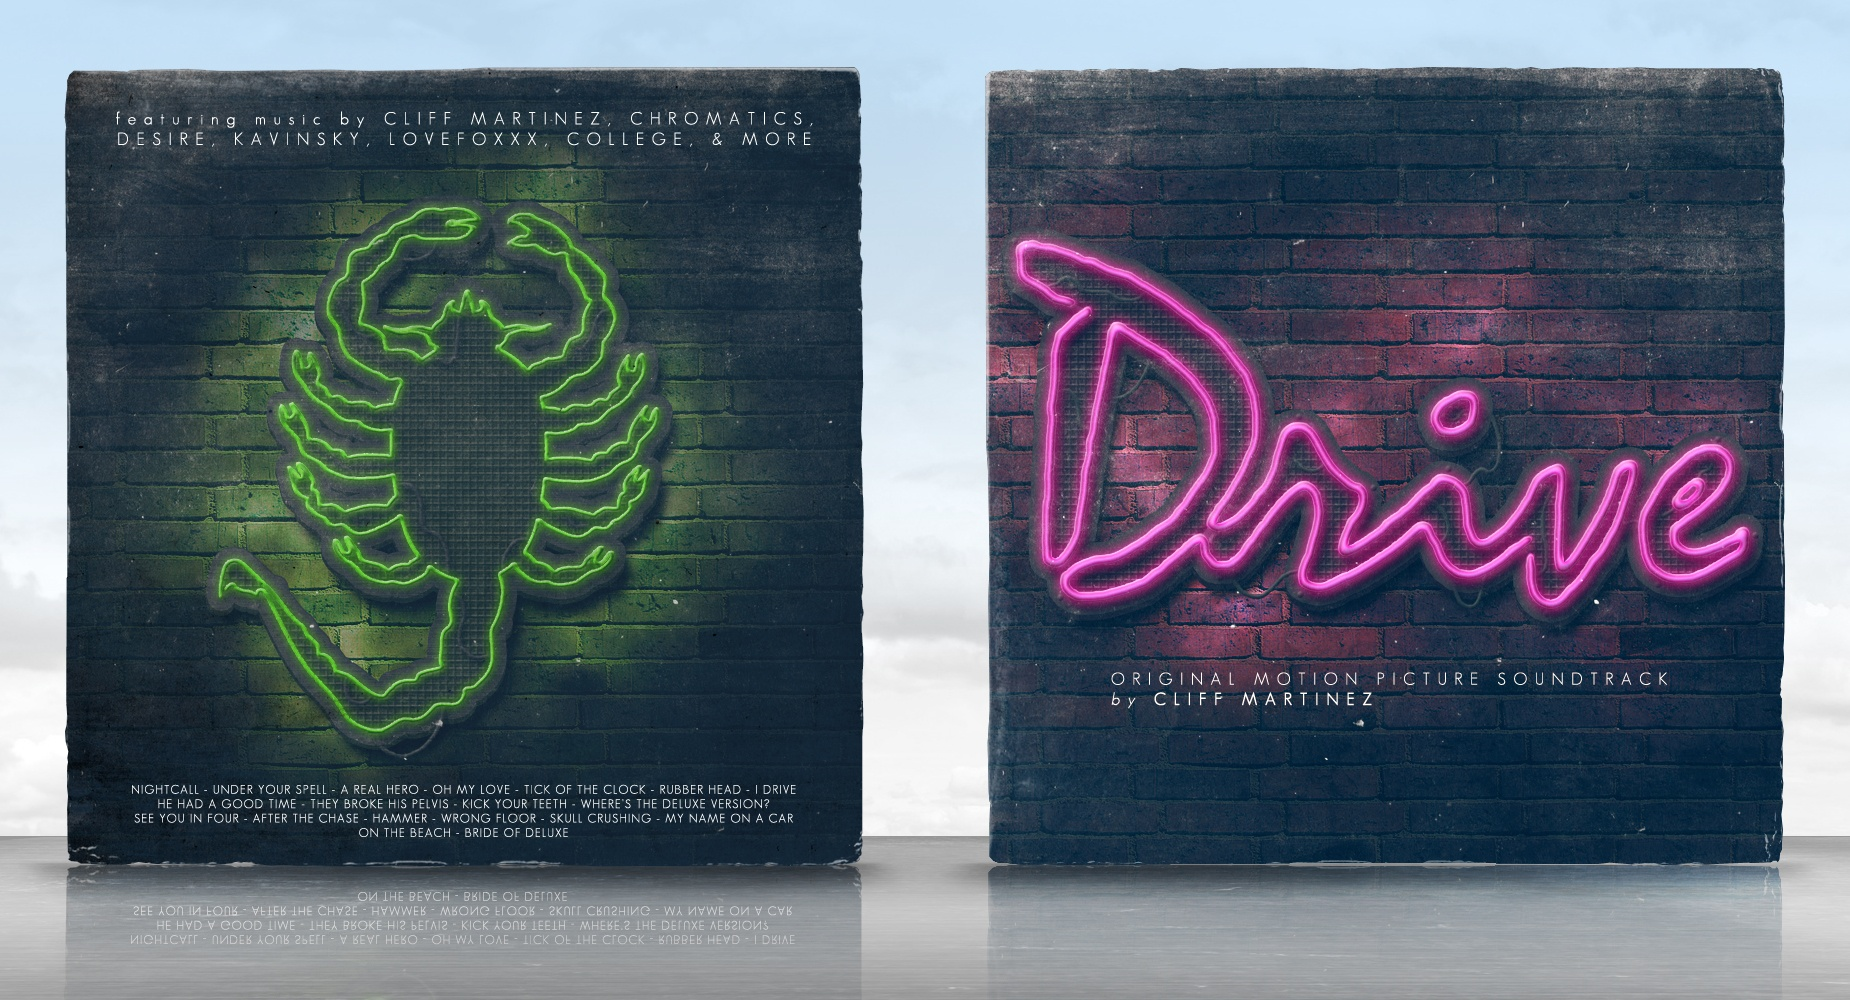 Drive - Original Motion Picture Soundtrack box cover